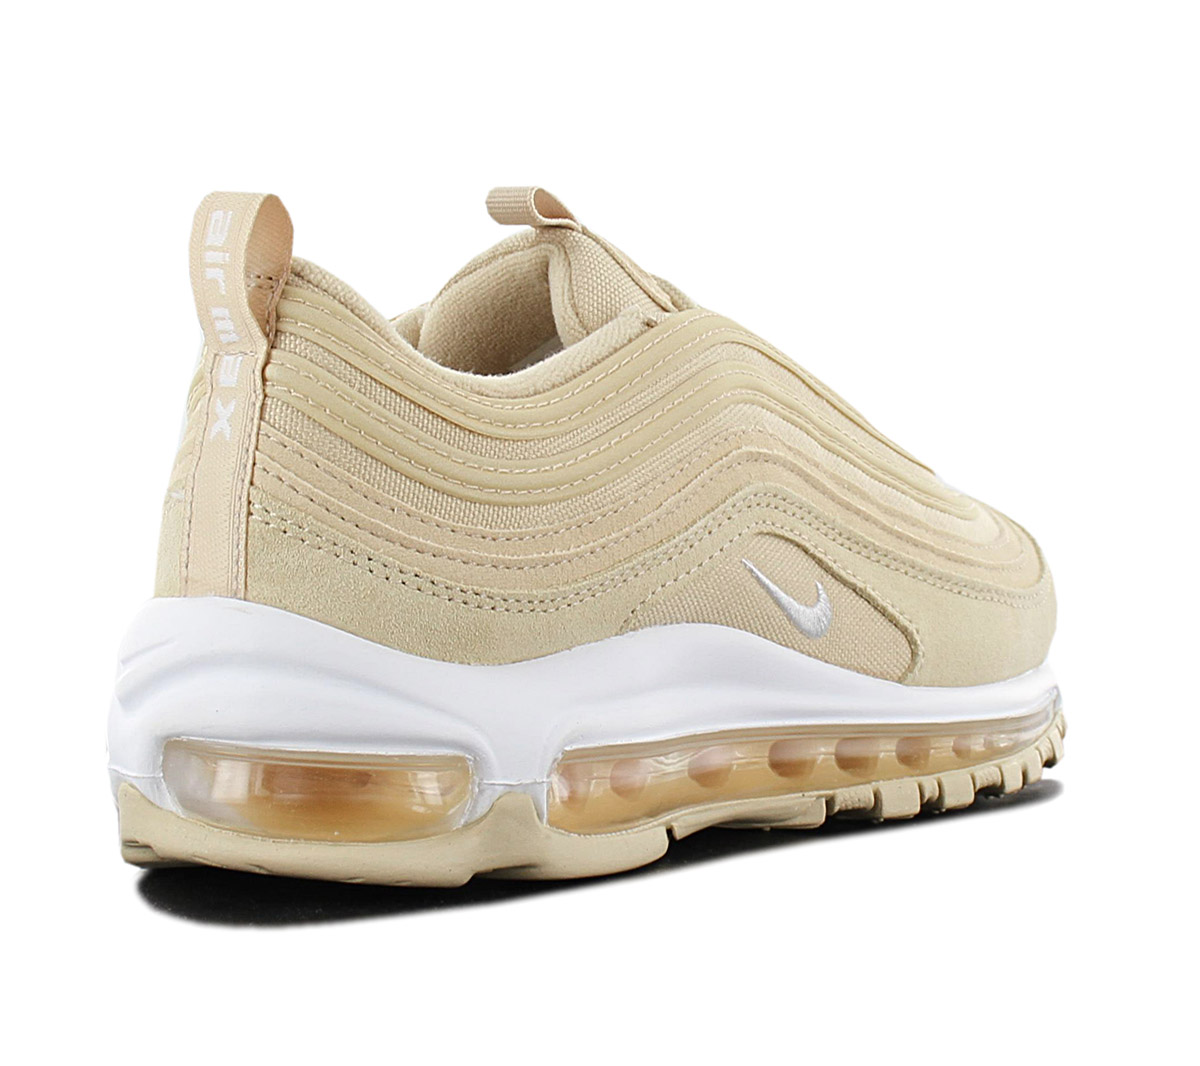 Details about Nike air max 97 Pe Women's Sneaker BQ7231 200 Beige Fashion Shoes Sneakers New